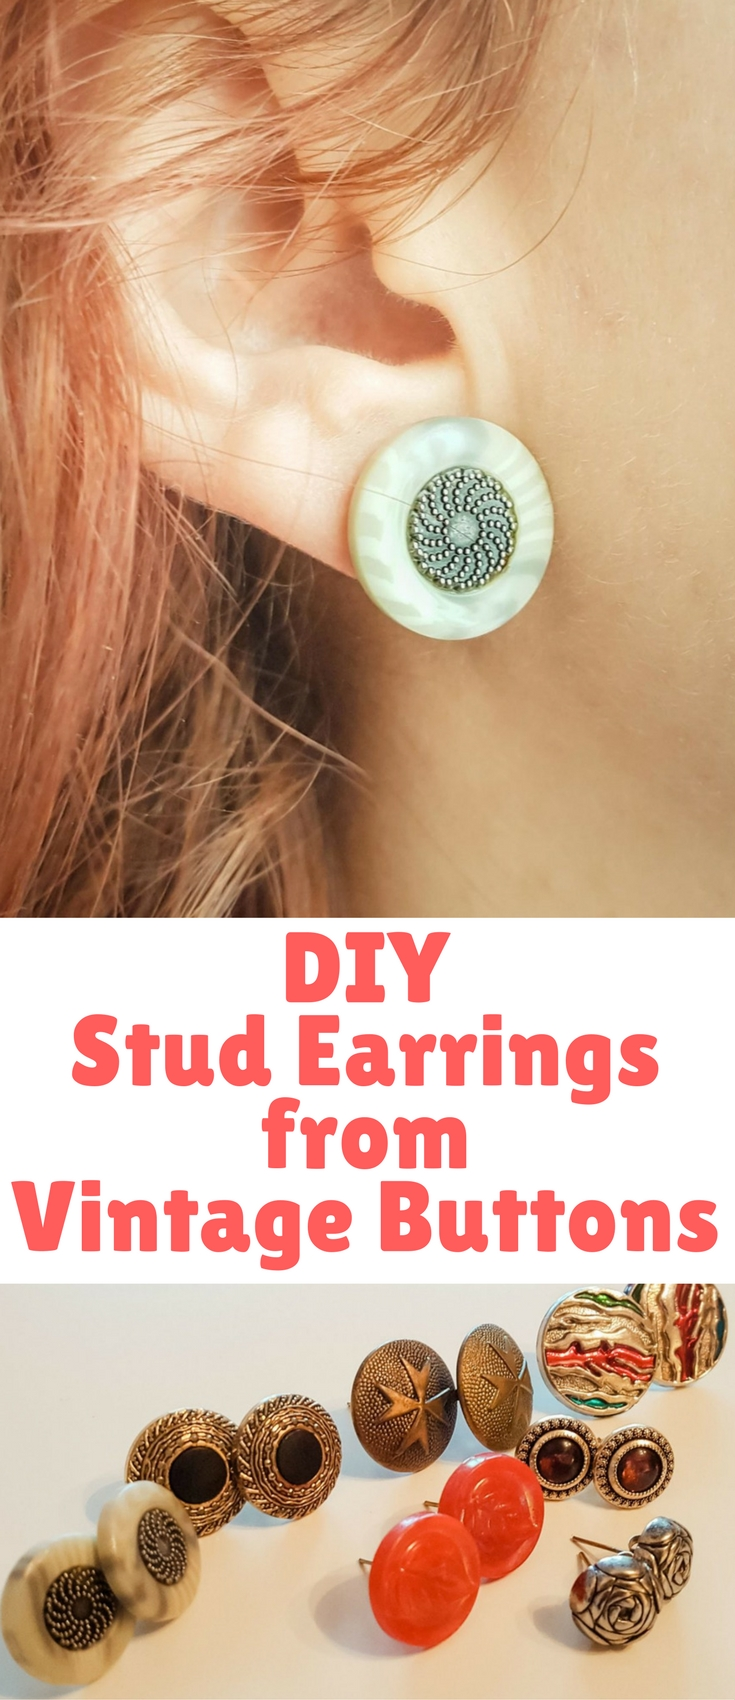 I came up with a project to supplement your jewelry box with nice little vintage style stud earrings, which are easy, cheap and quick to make.